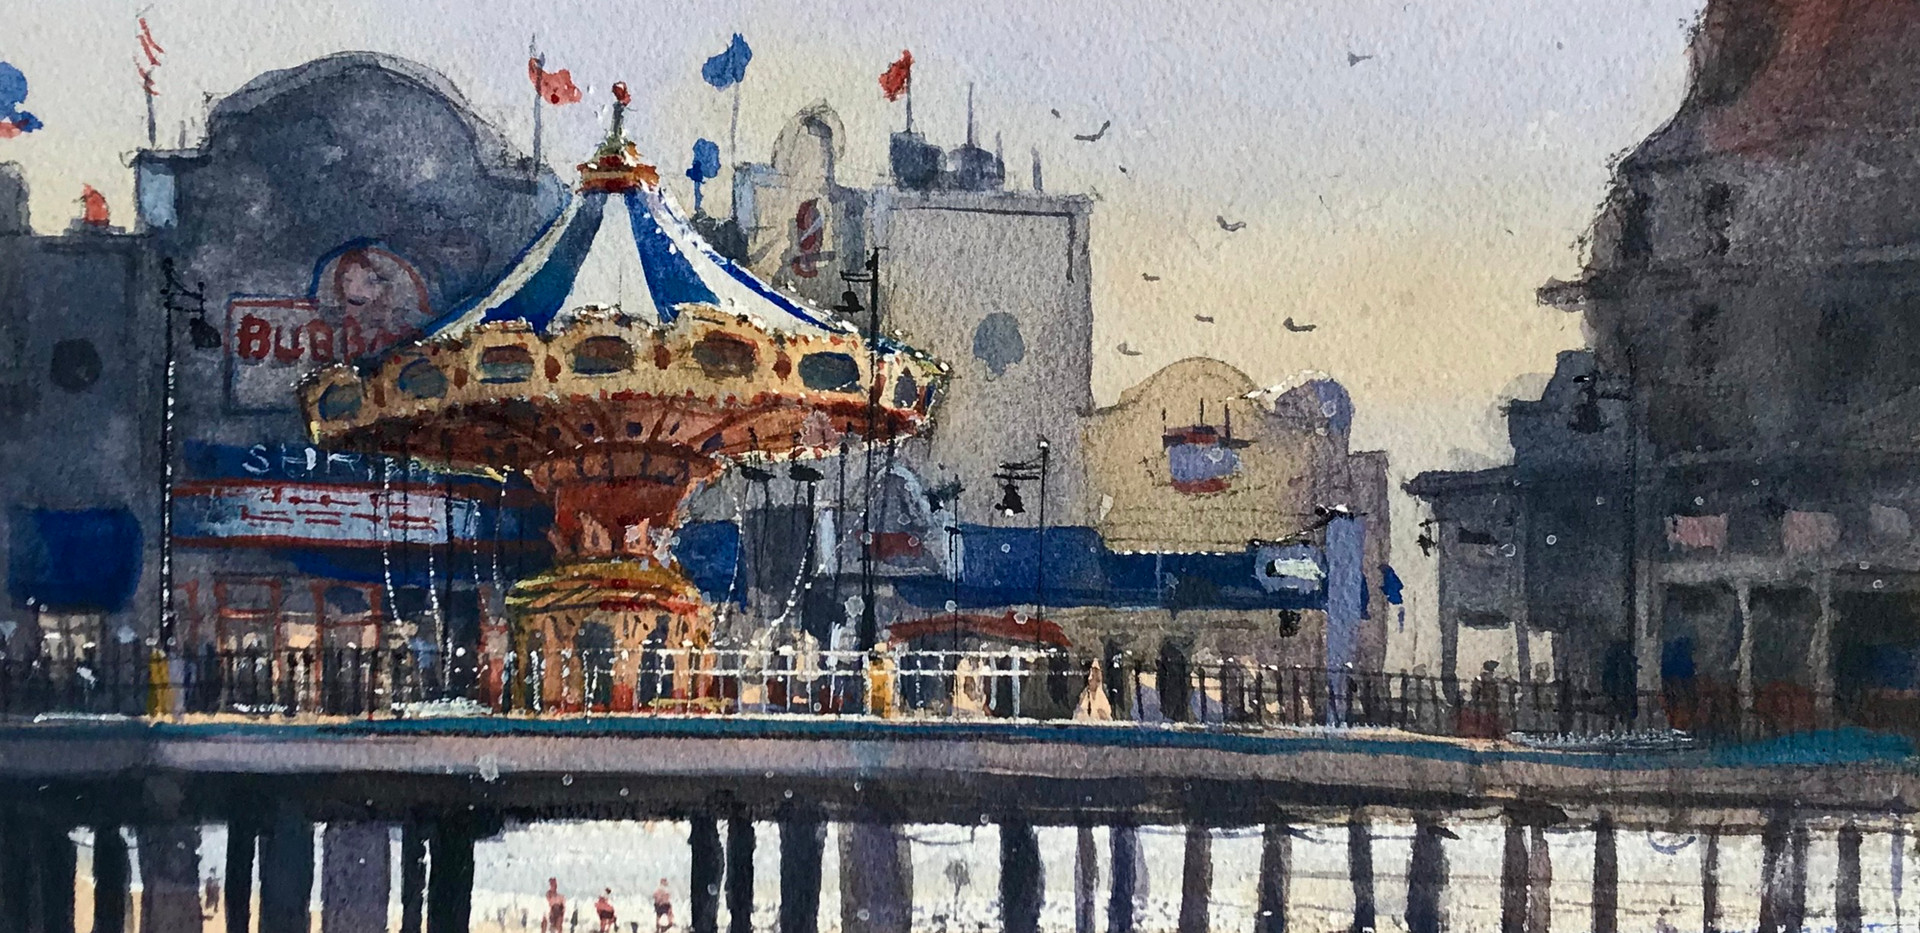 The Carousel (Pleasure Pier)